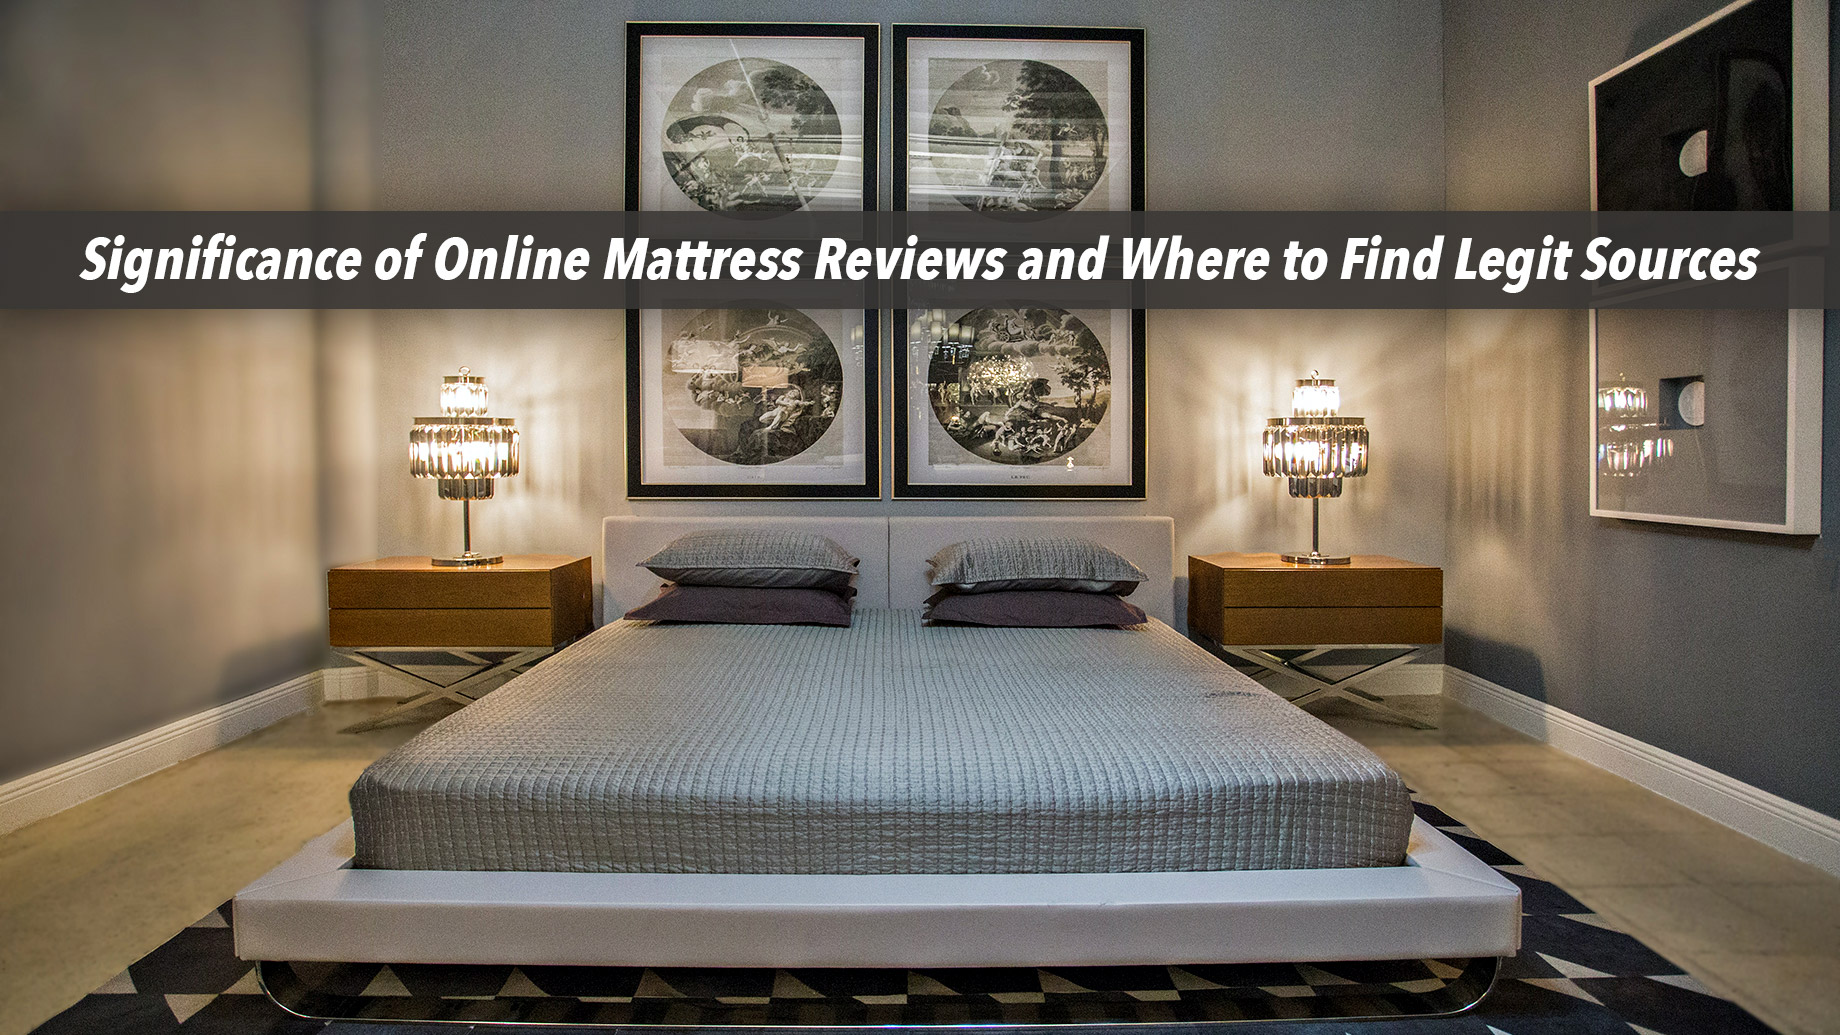 Significance of Online Mattress Reviews and Where to Find Legit Sources